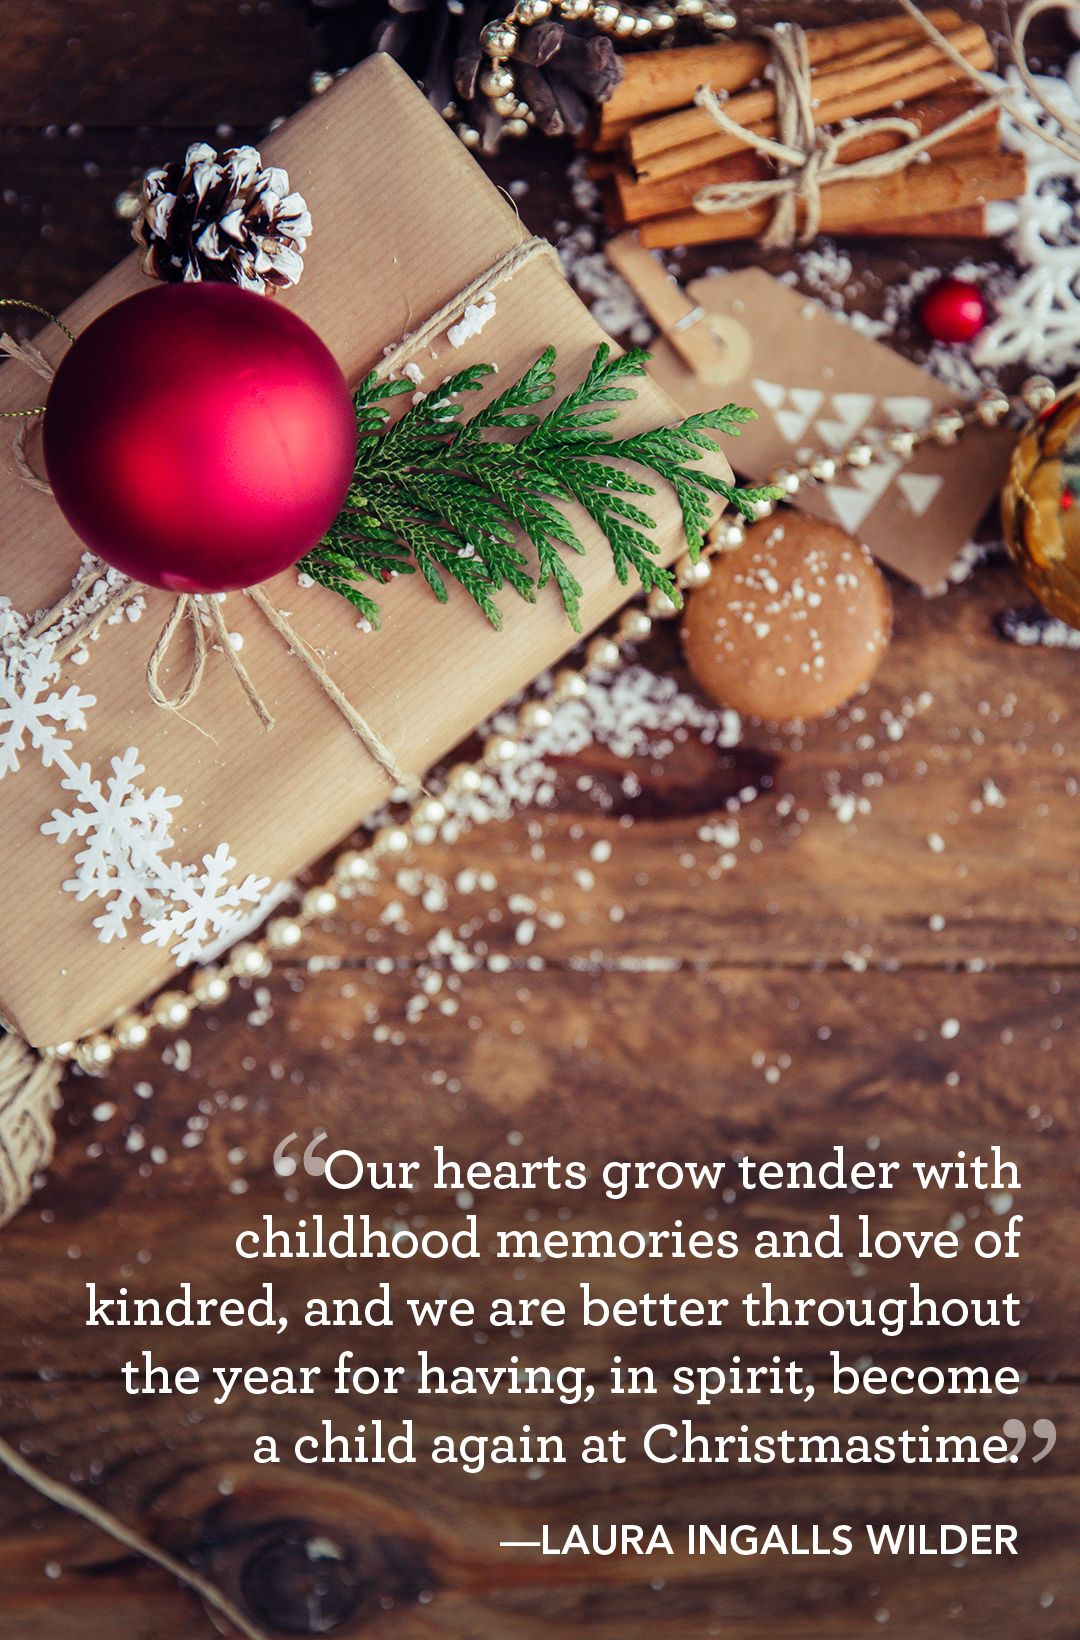 15 merry christmas quotes inspirational christmas sayings and quotes for friends and family - Christmas Decoration Quotes